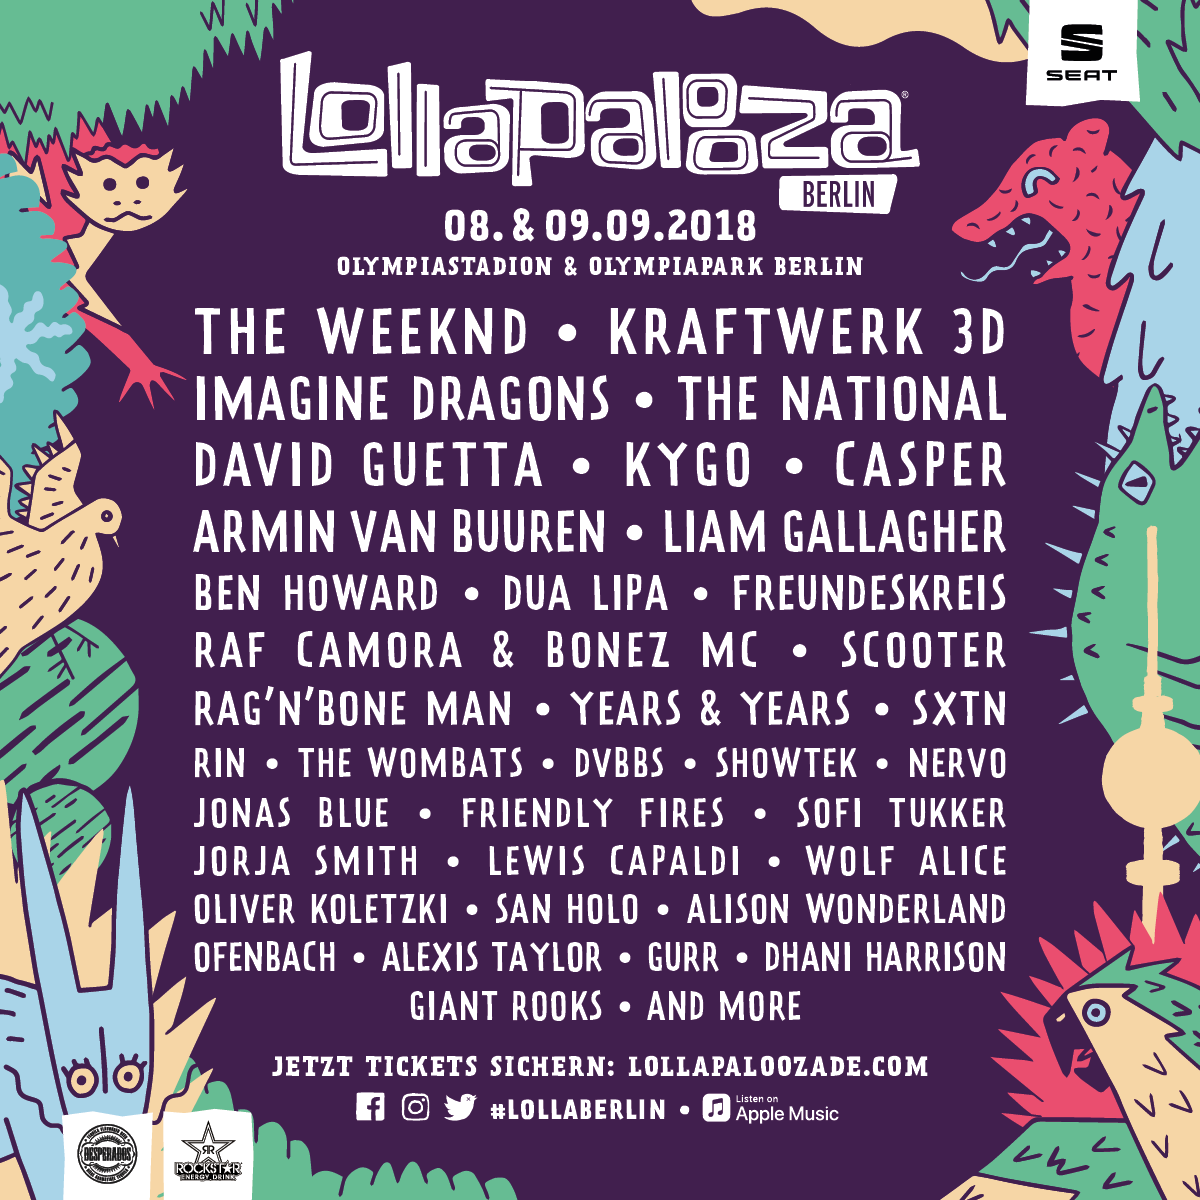 Lollapalooza Berlin full line-up